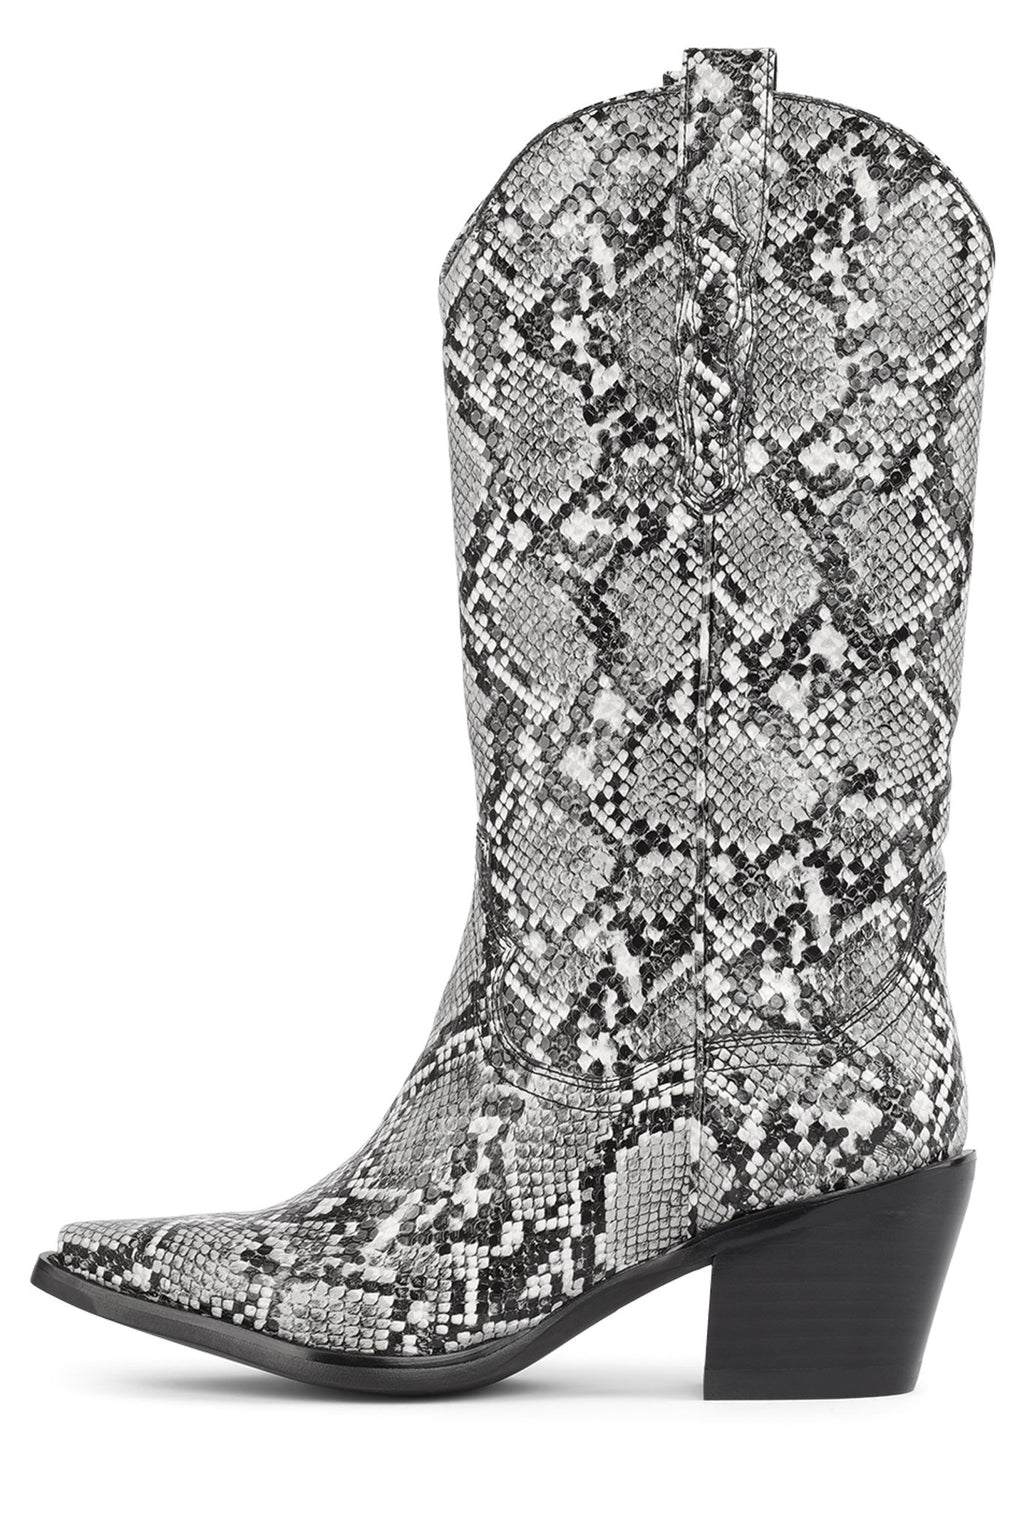 DAGGET Mid-Calf Boot STRATEGY Grey Snake 6